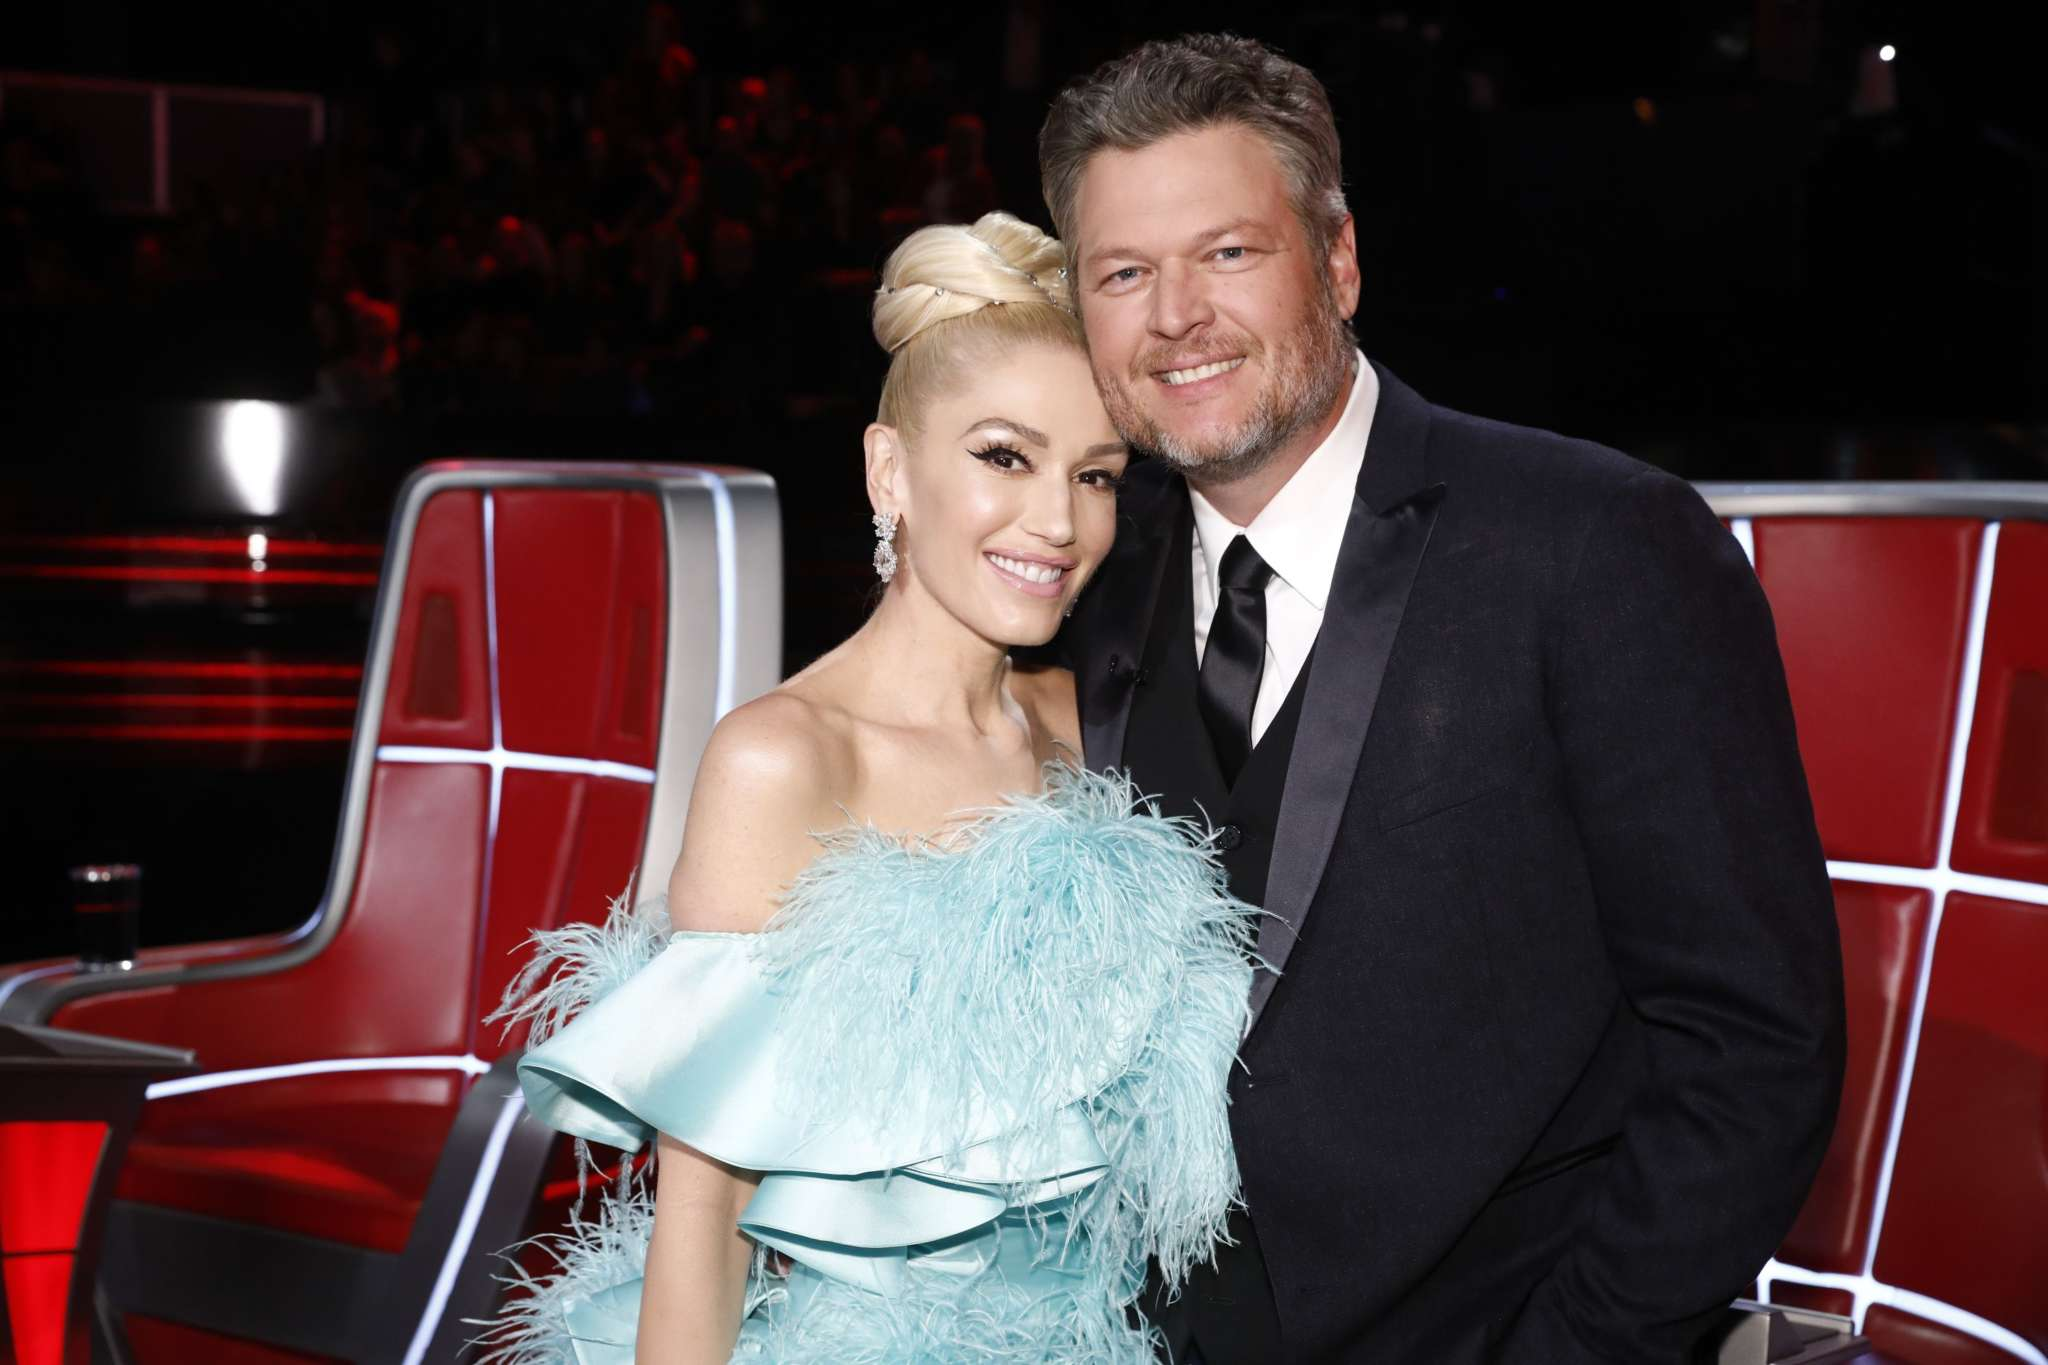 Blake Shelton And Gwen Stefani – Inside Their Wedding Plans After Just Getting Engaged!